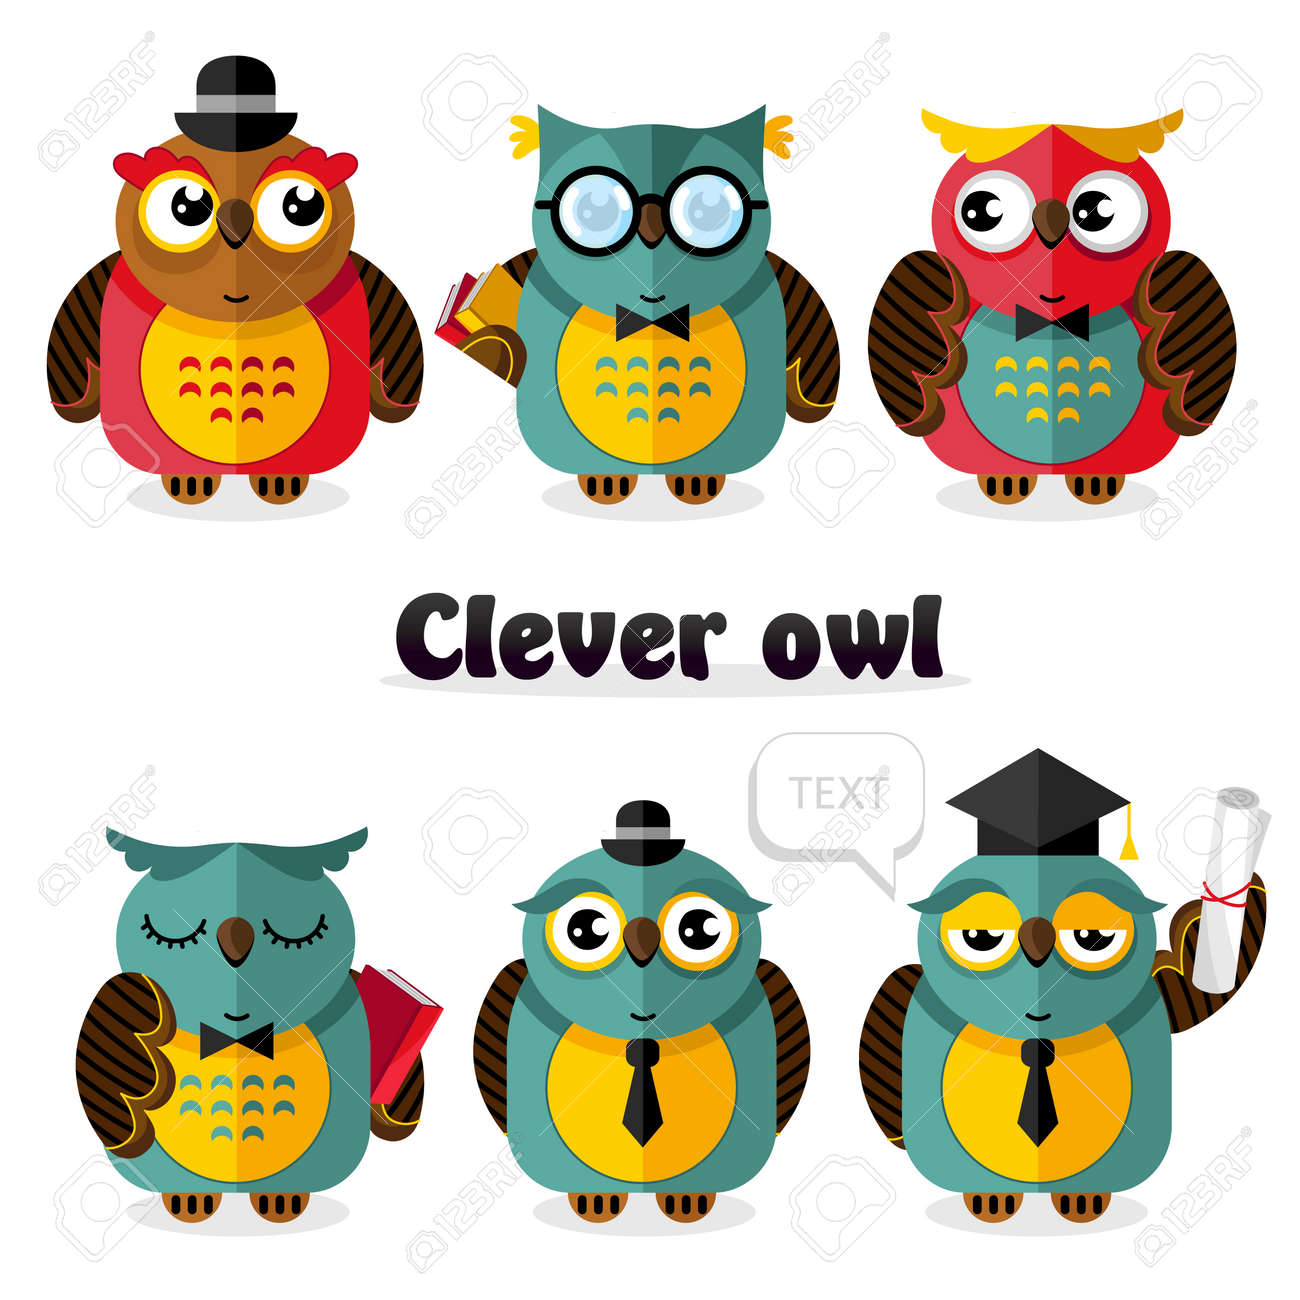 clever owl bird cartoon characters set vector illustration. science